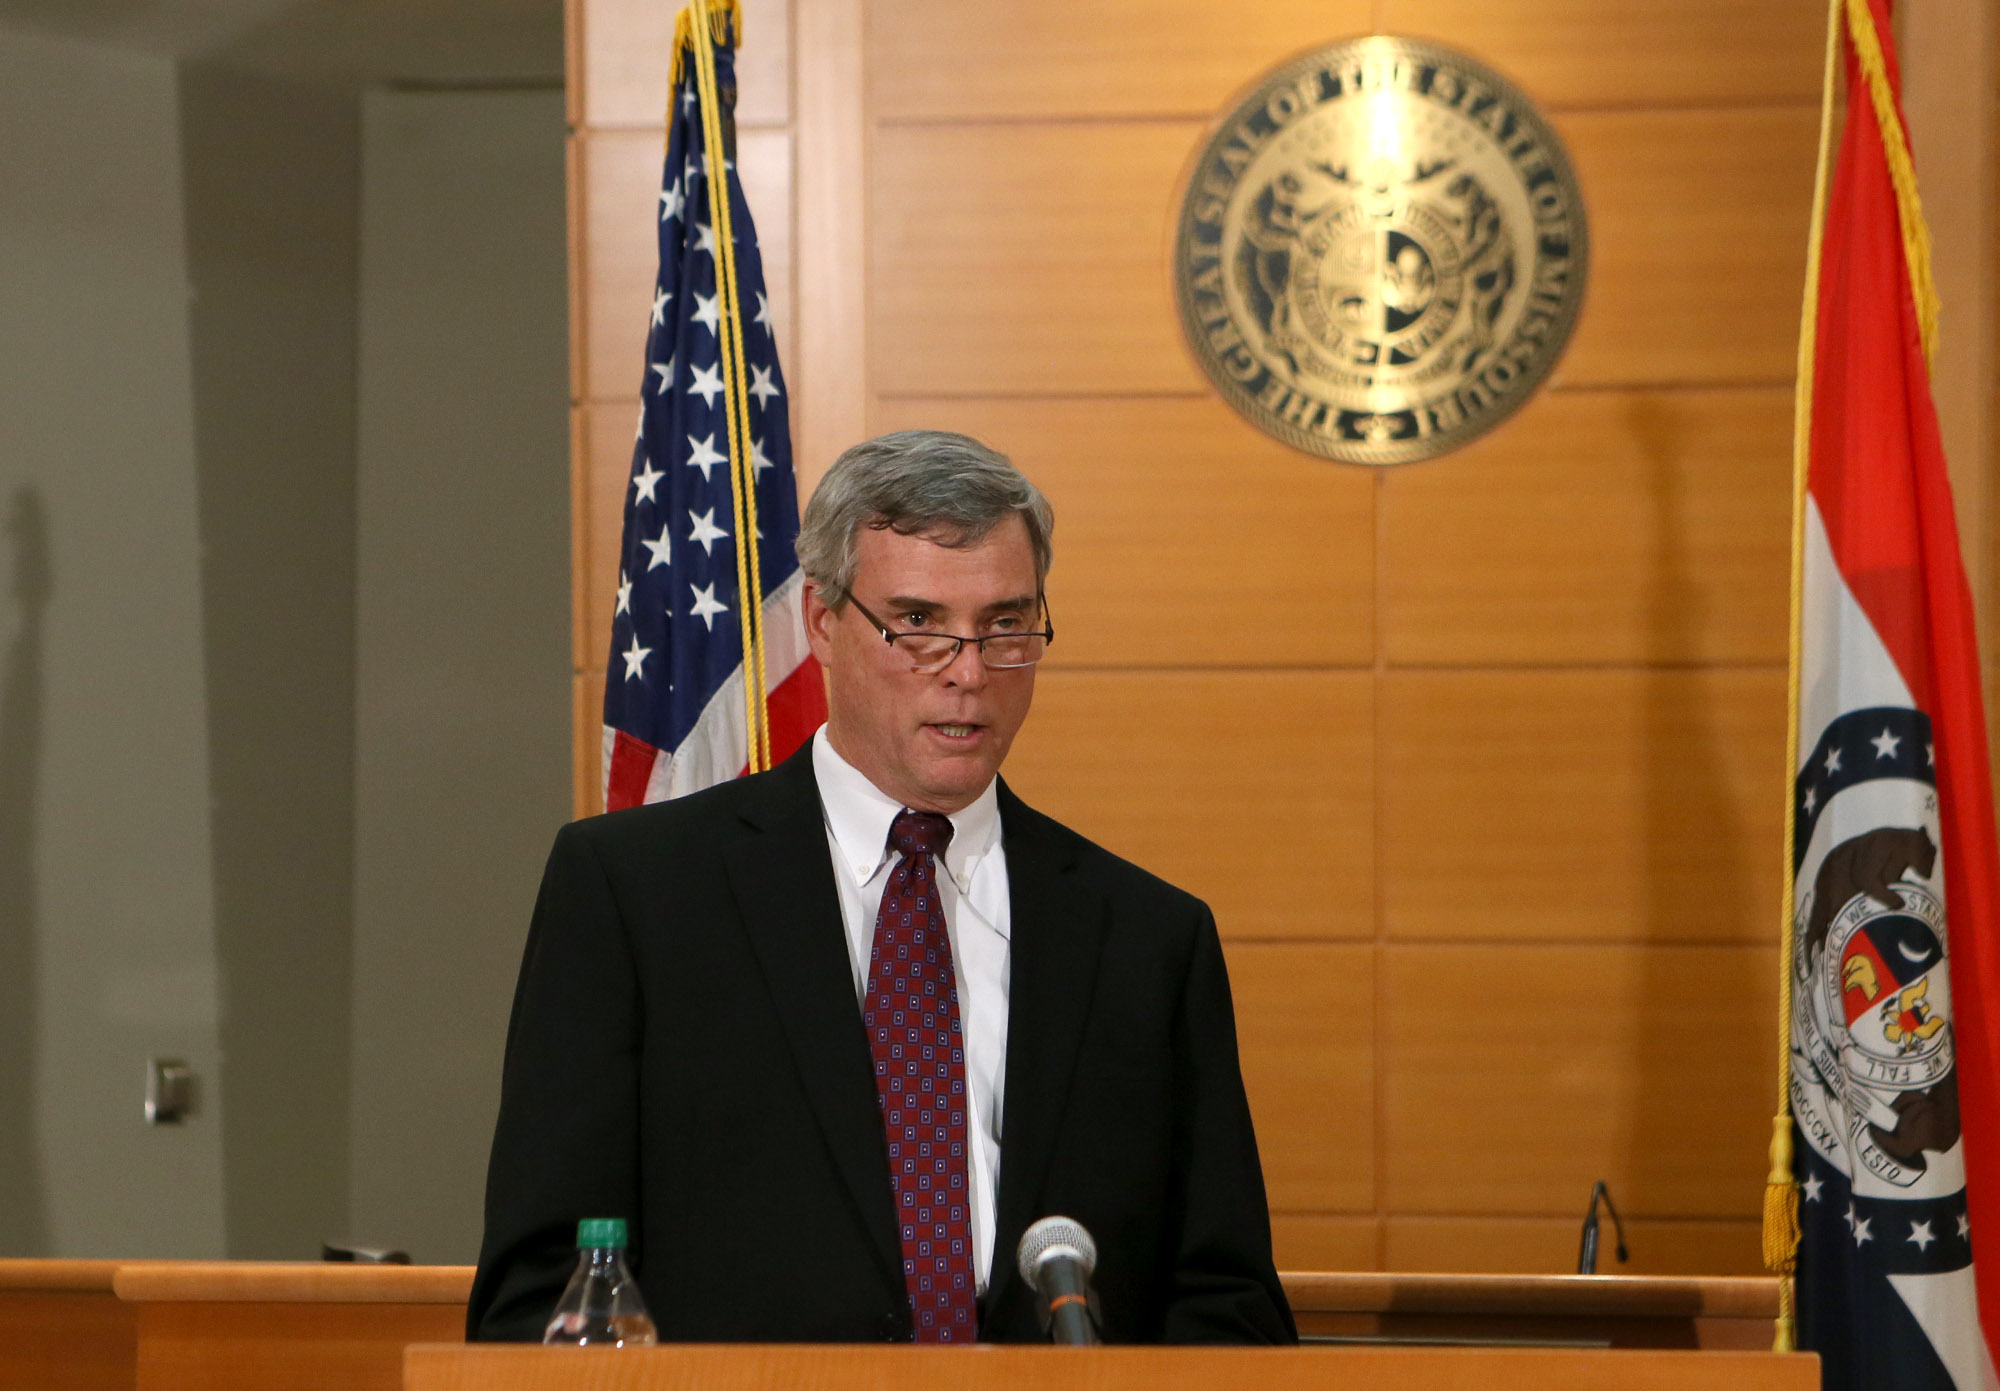 St. Louis County Prosecutor Robert McCulloch announces the grand jury's decision not to indict Ferguson police officer Darren Wilson in the shooting death of Michael Brown on Nov. 24, 2014, at the Buzz Westfall Justice Center in Clayton, Missouri. (Credit: Cristina Fletes-Boutte-Pool/Getty Images)